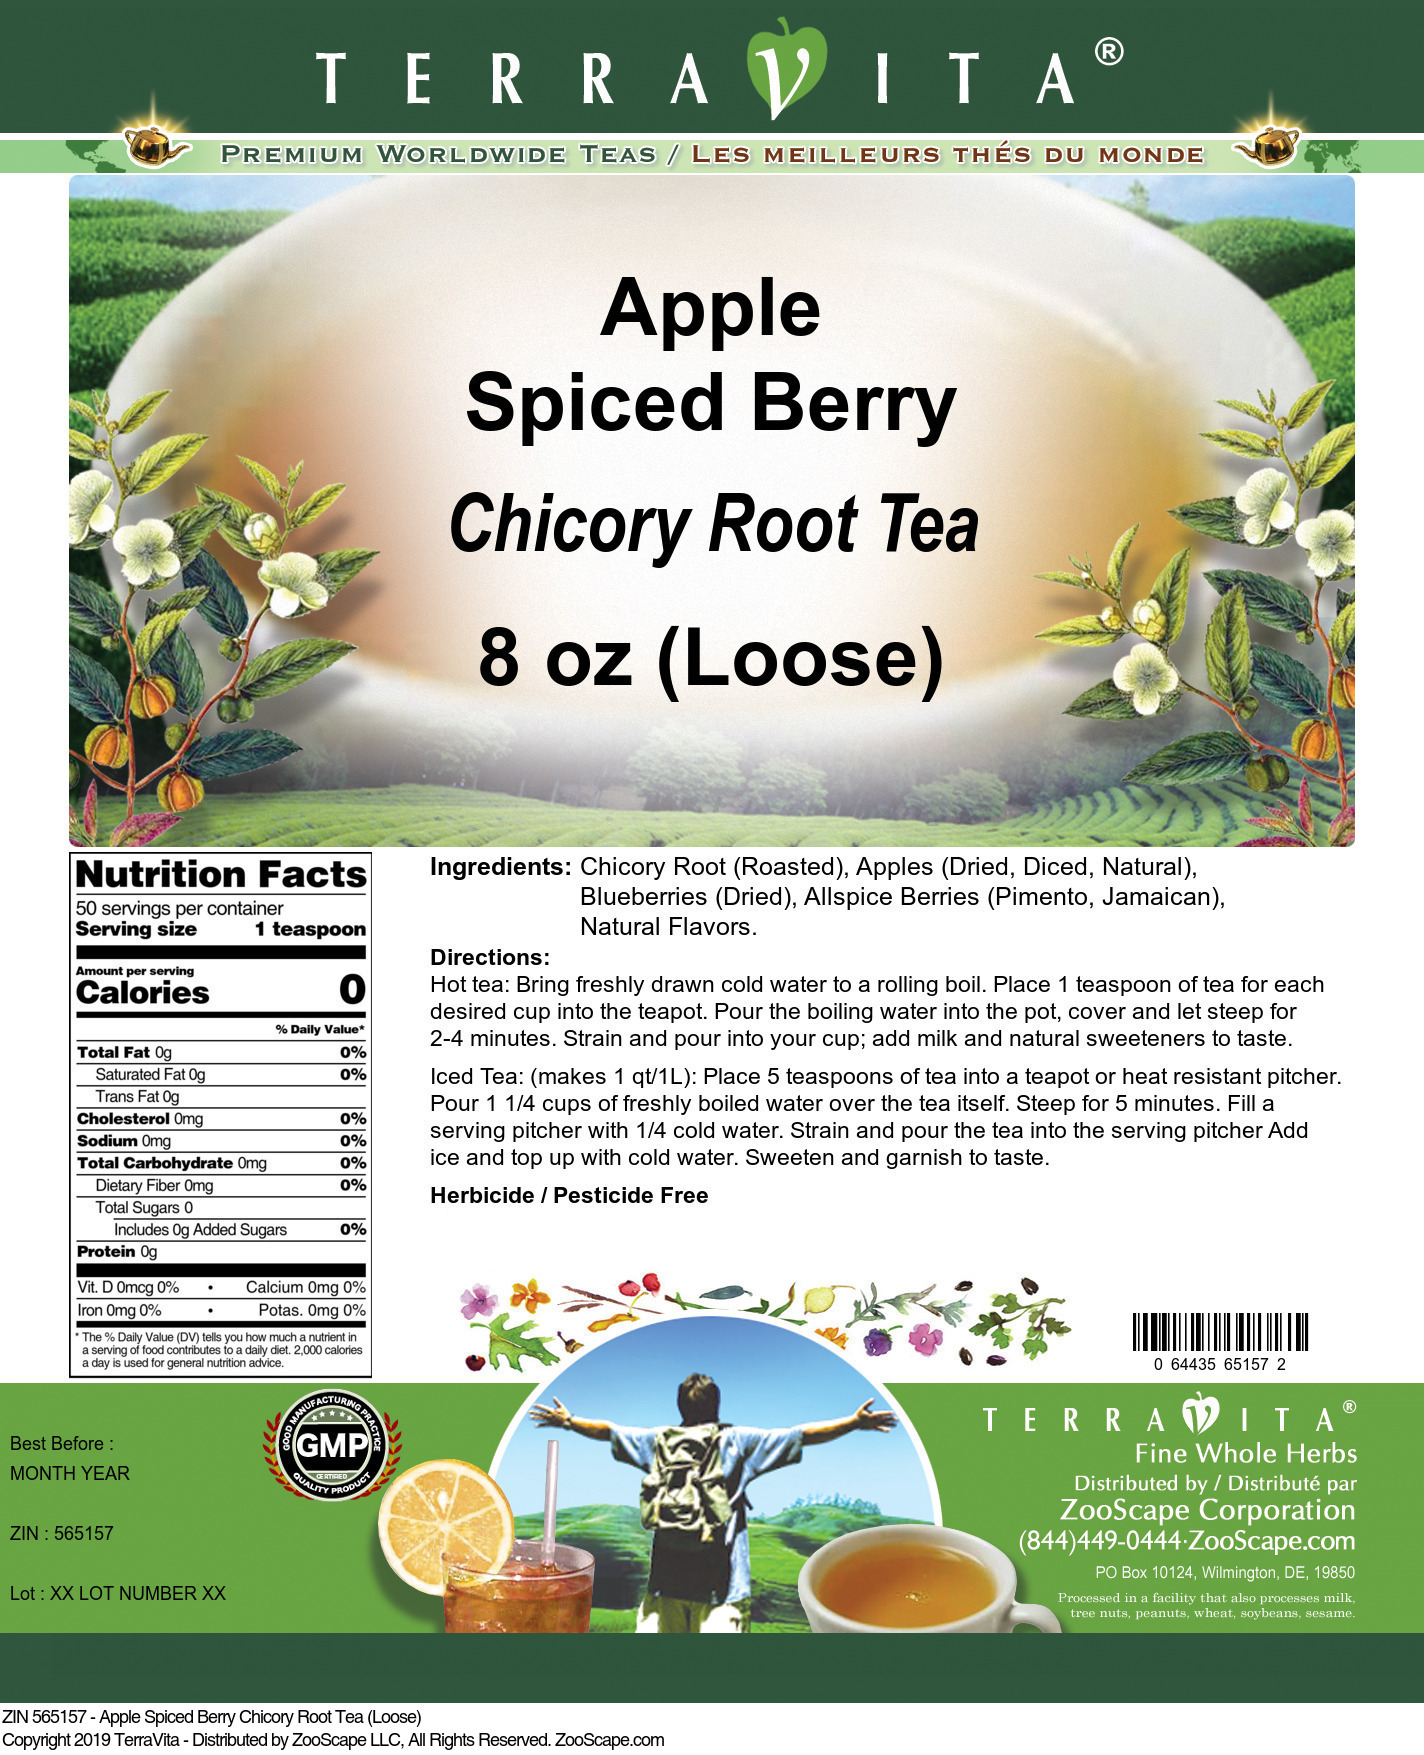 Apple Spiced Berry Chicory Root Tea (Loose)